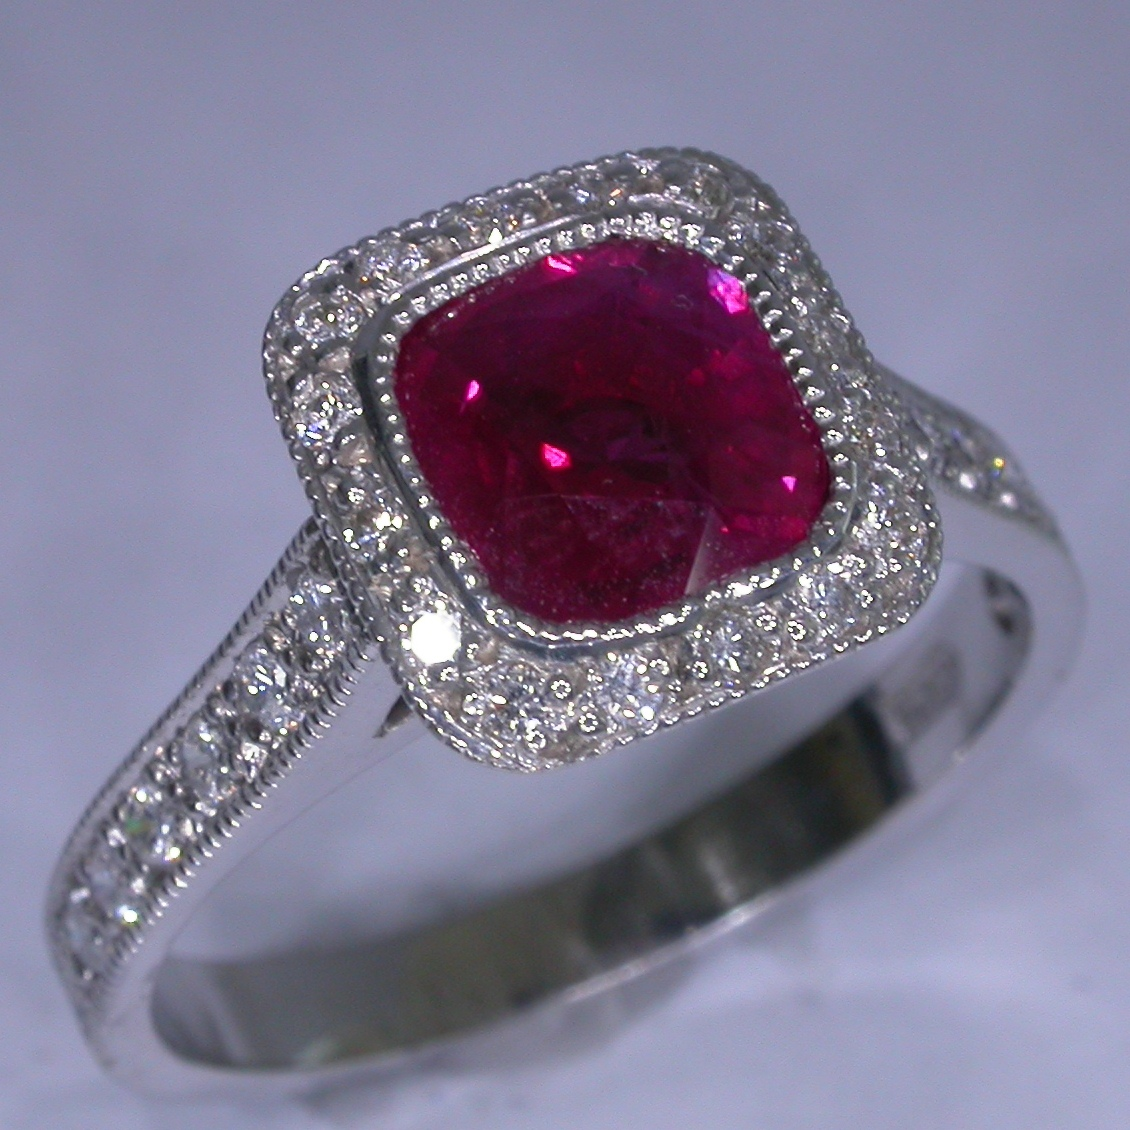 Colour Stone Rings in Melbourne - #7311